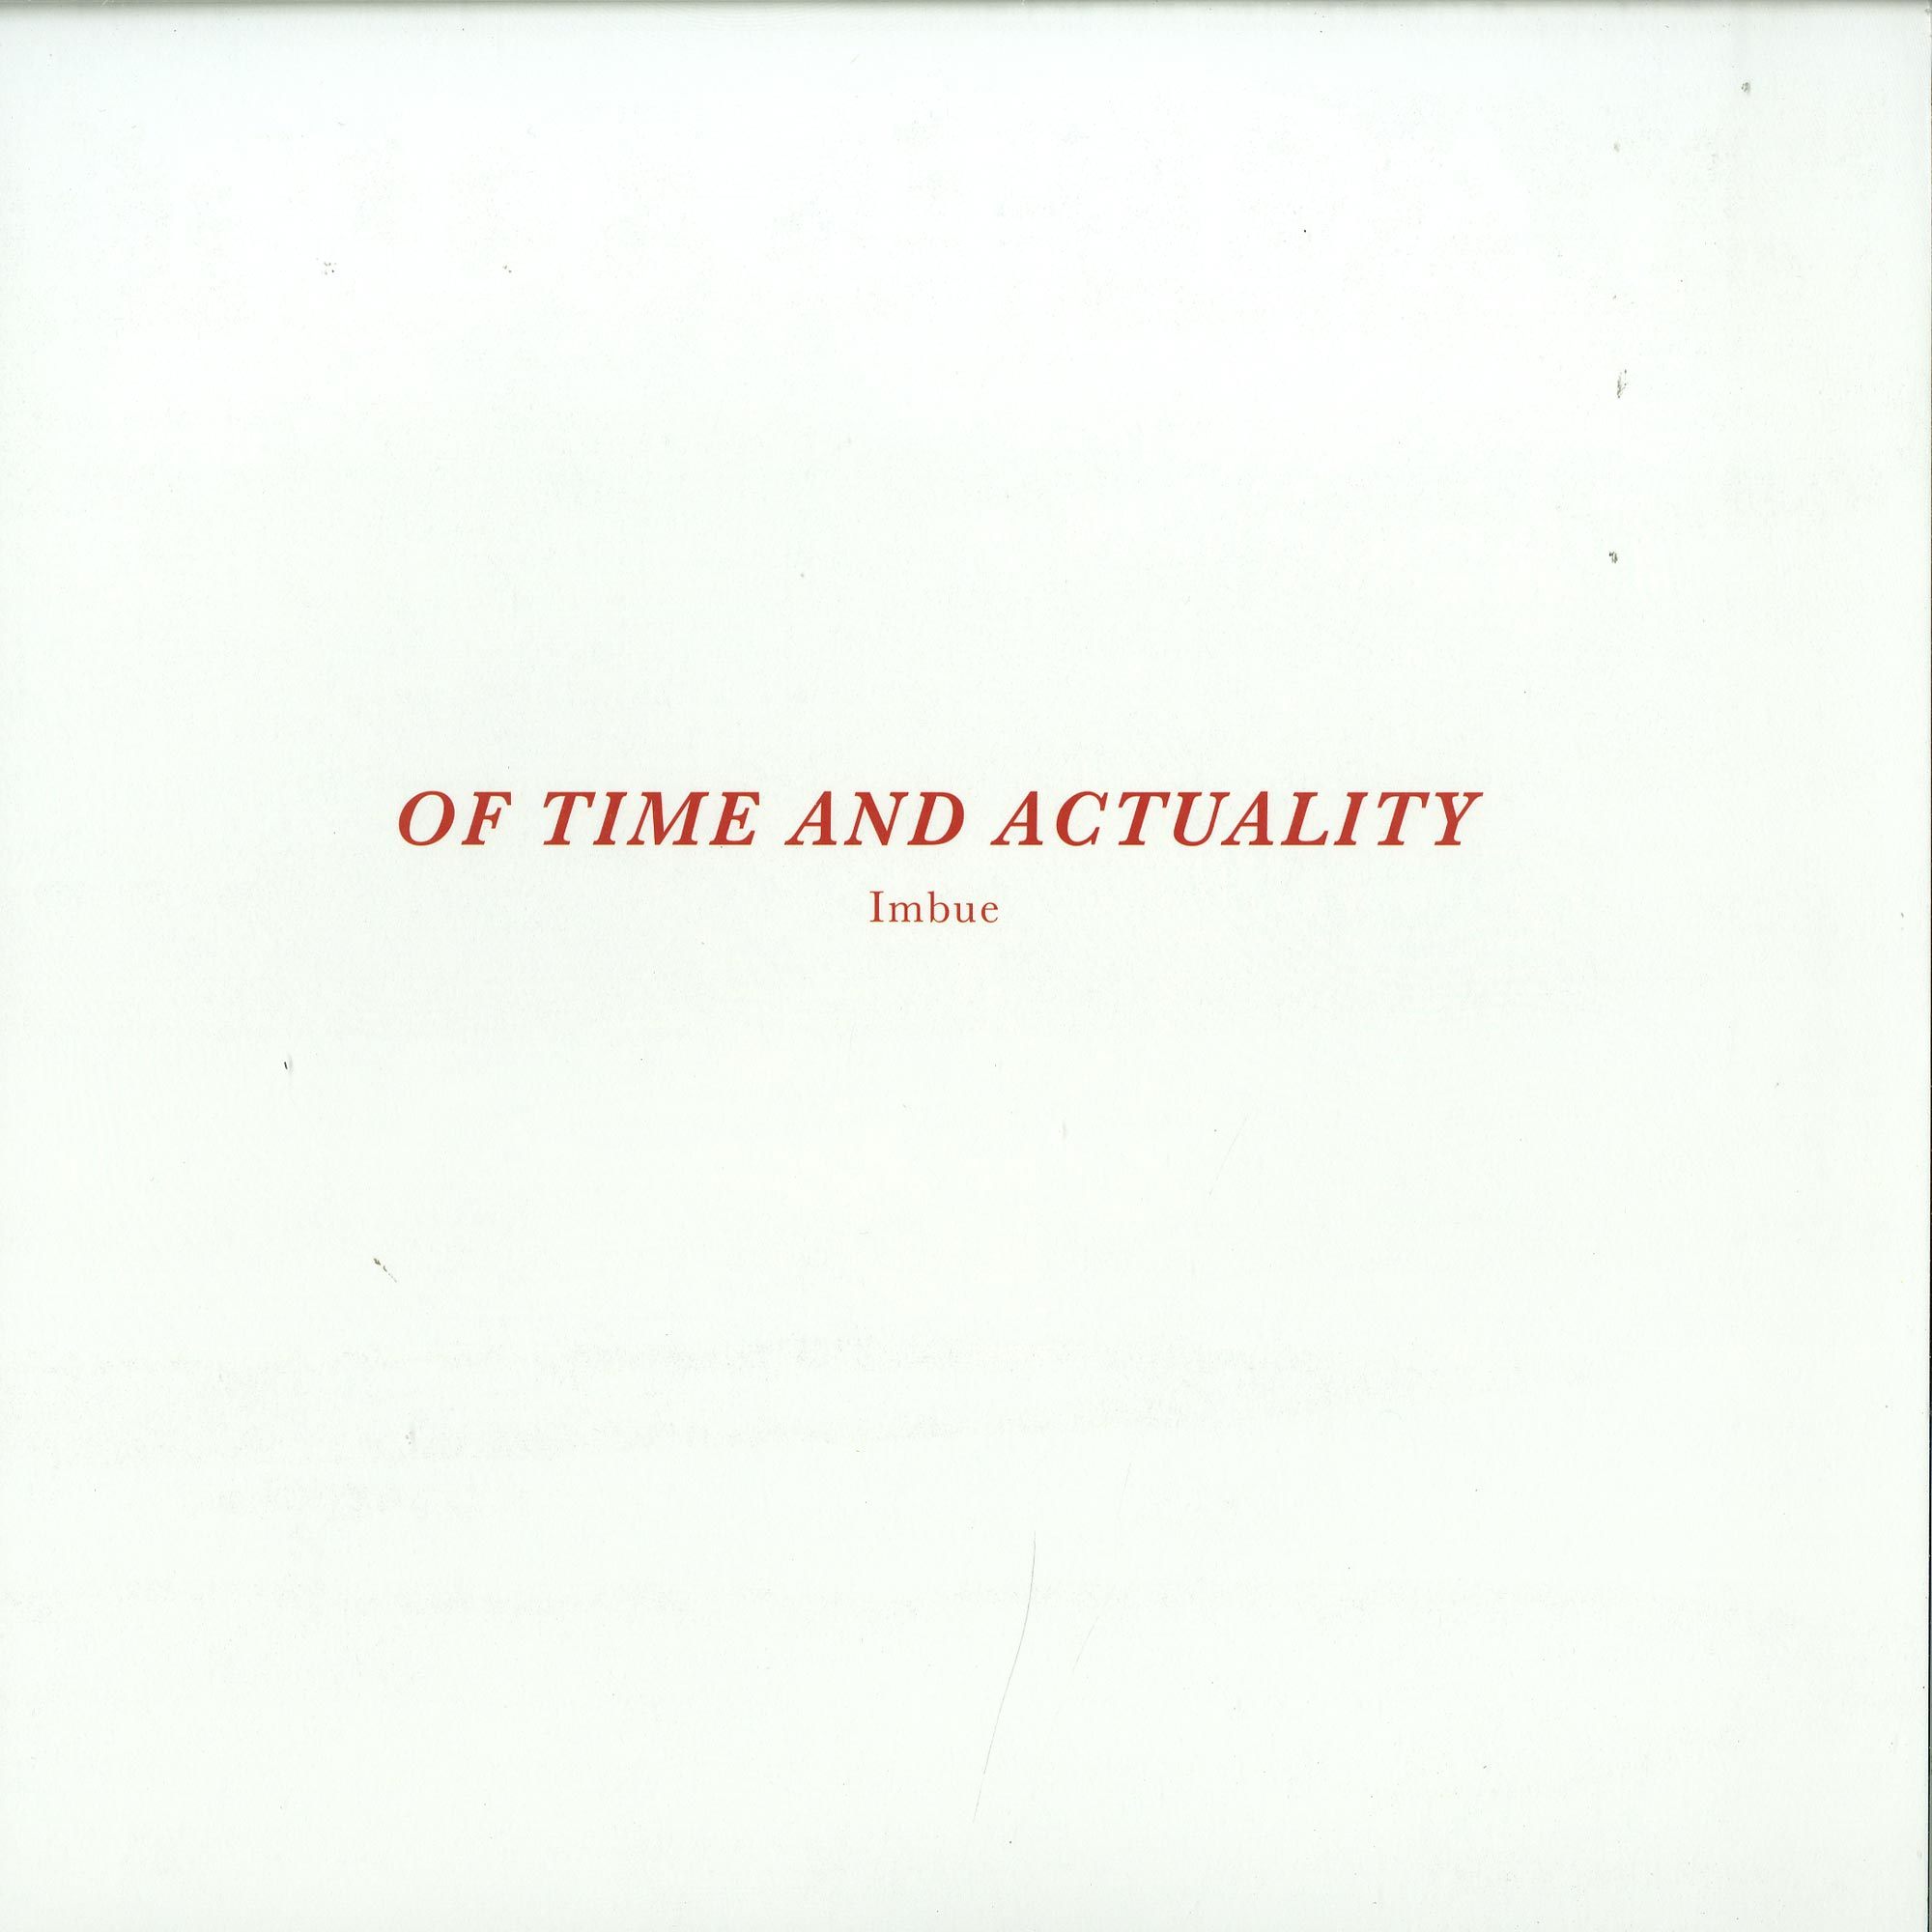 Imbue - OF TIME AND ACTUALITY